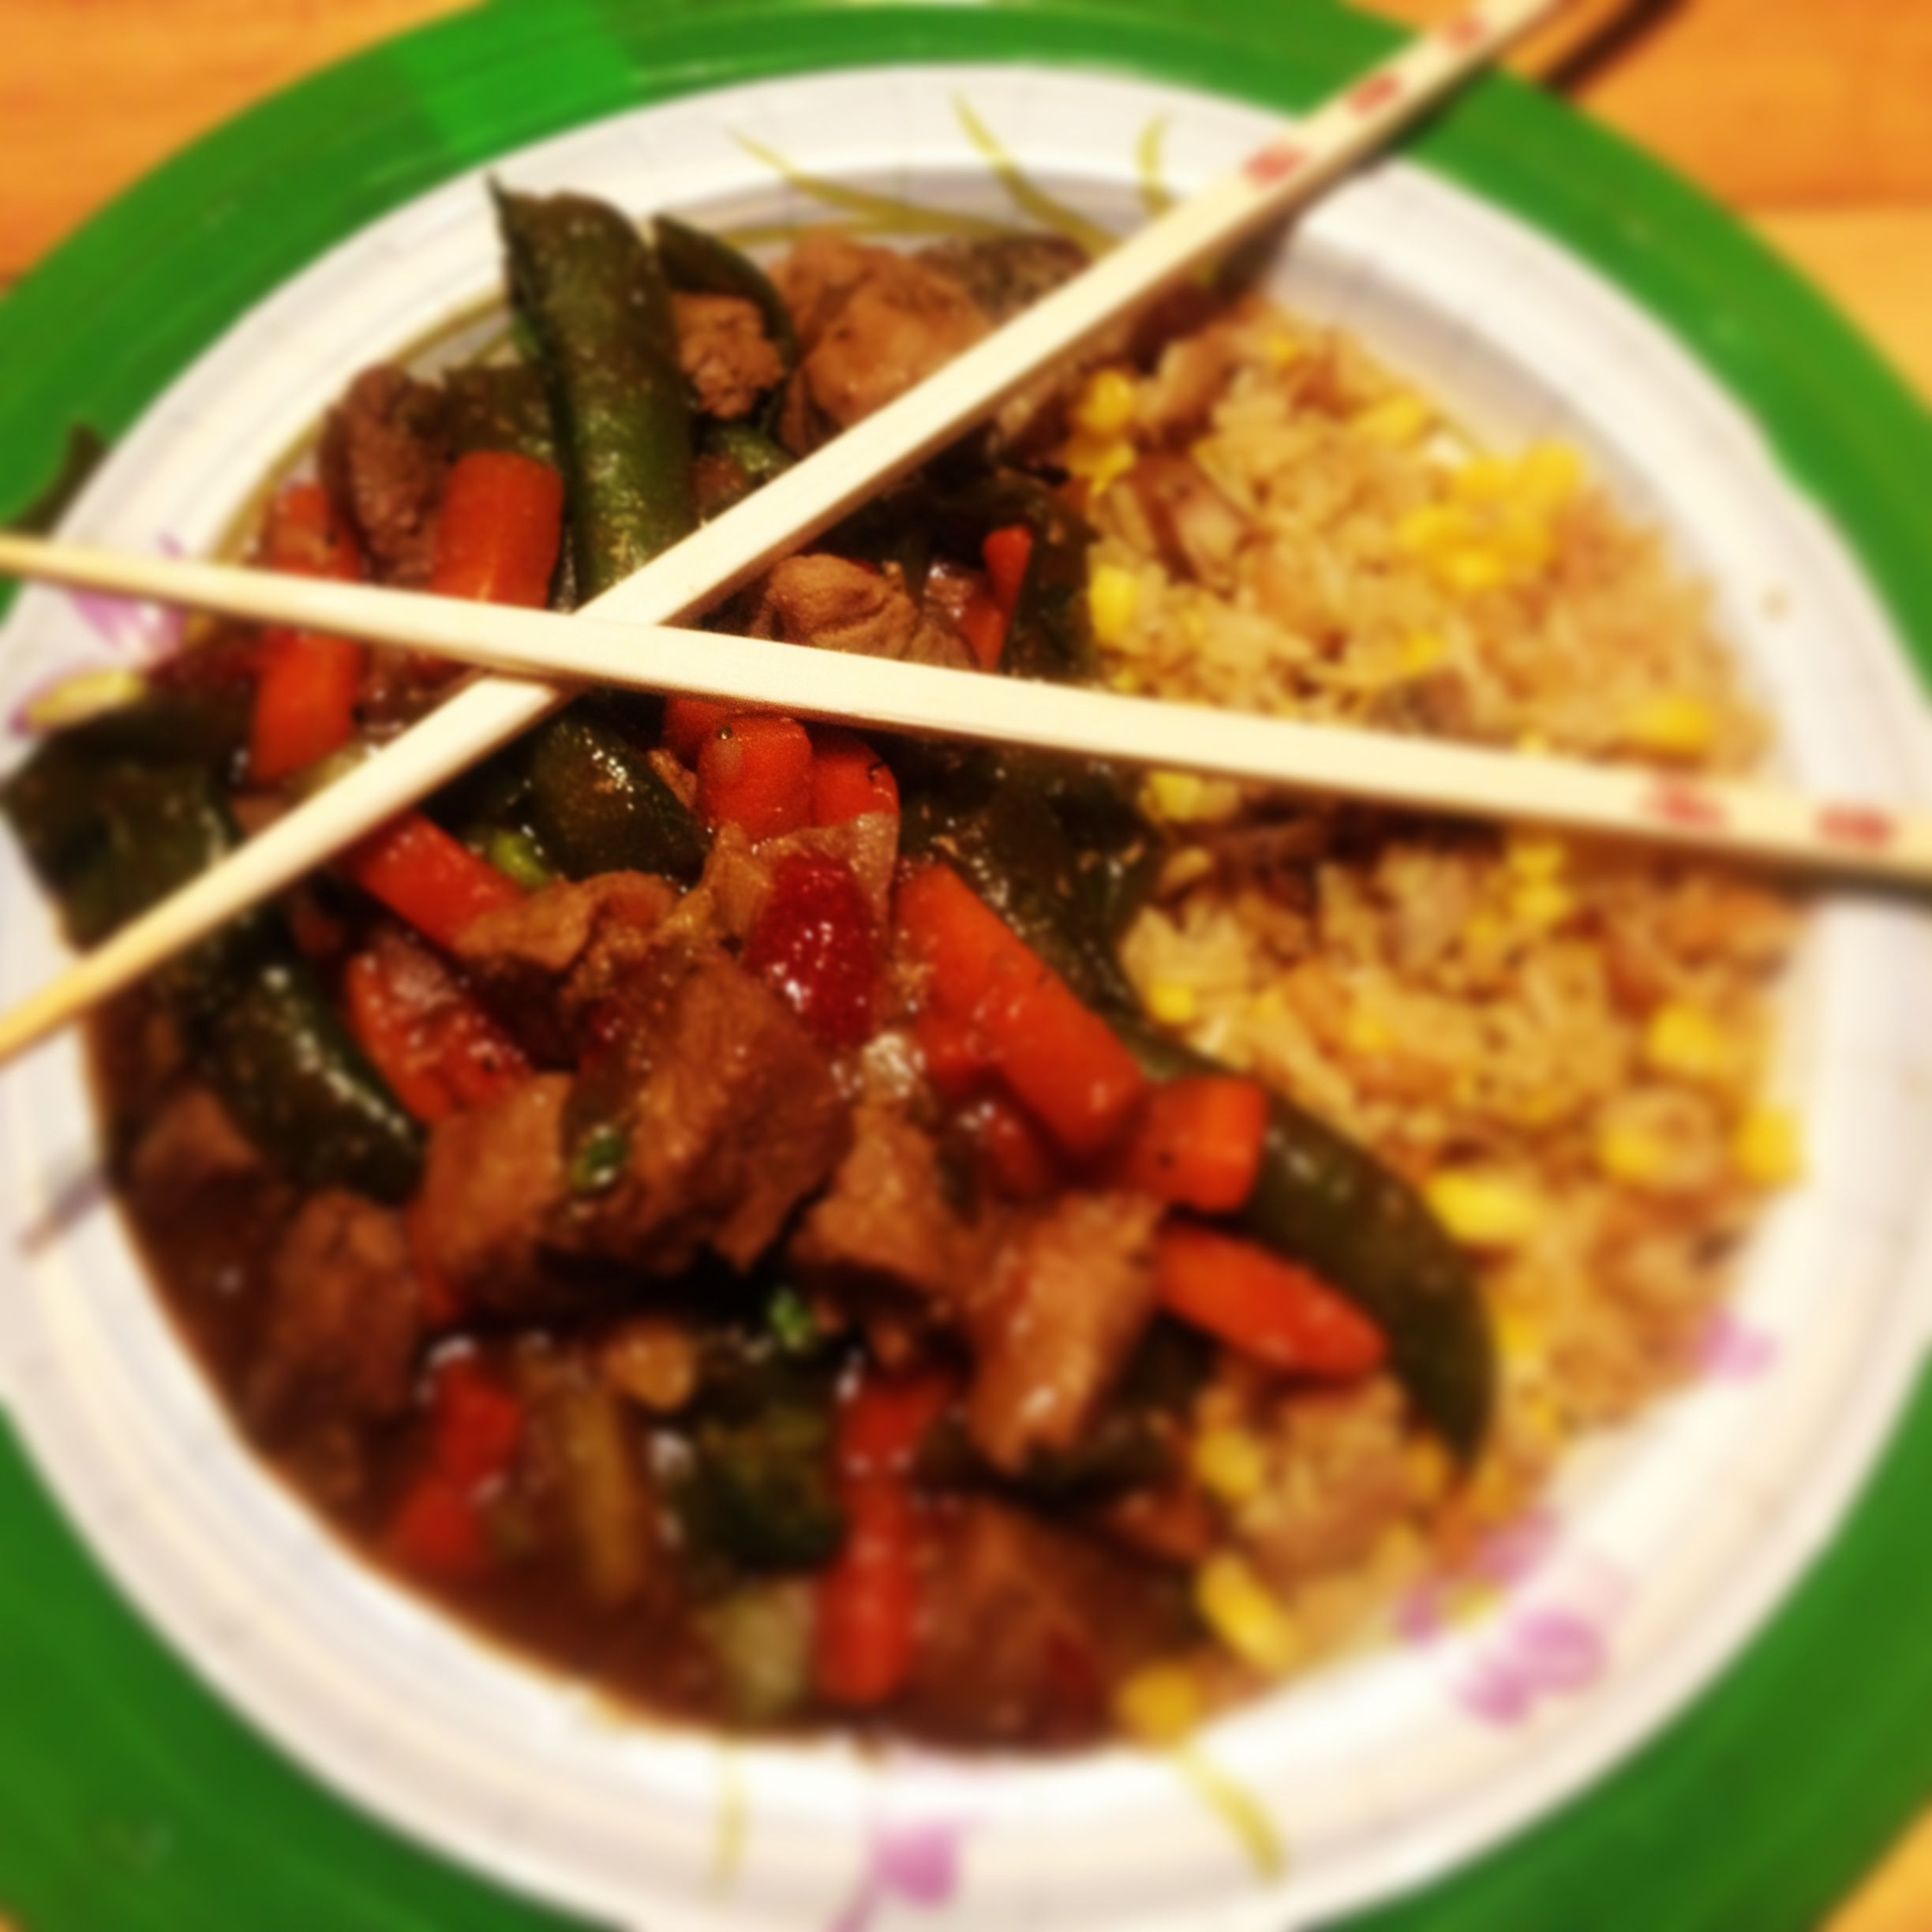 Homemade Chinese Food My Version Of Pork Stir Fry Made With Bought Frozen